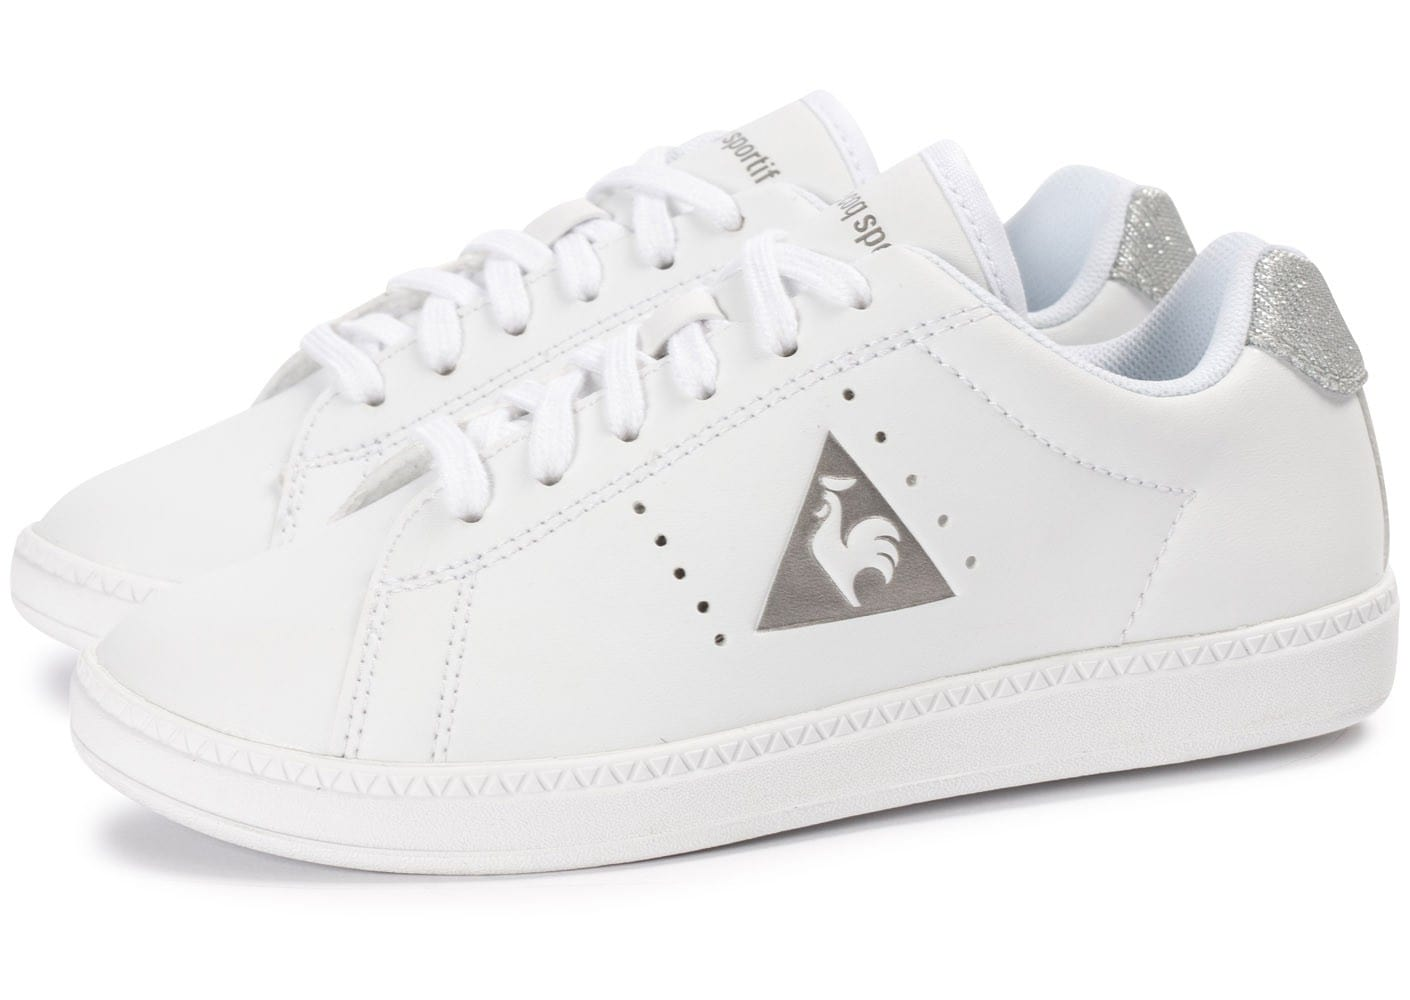 soldes le coq sportif court one glitter enfant blanche chaussures toutes les baskets sold es. Black Bedroom Furniture Sets. Home Design Ideas